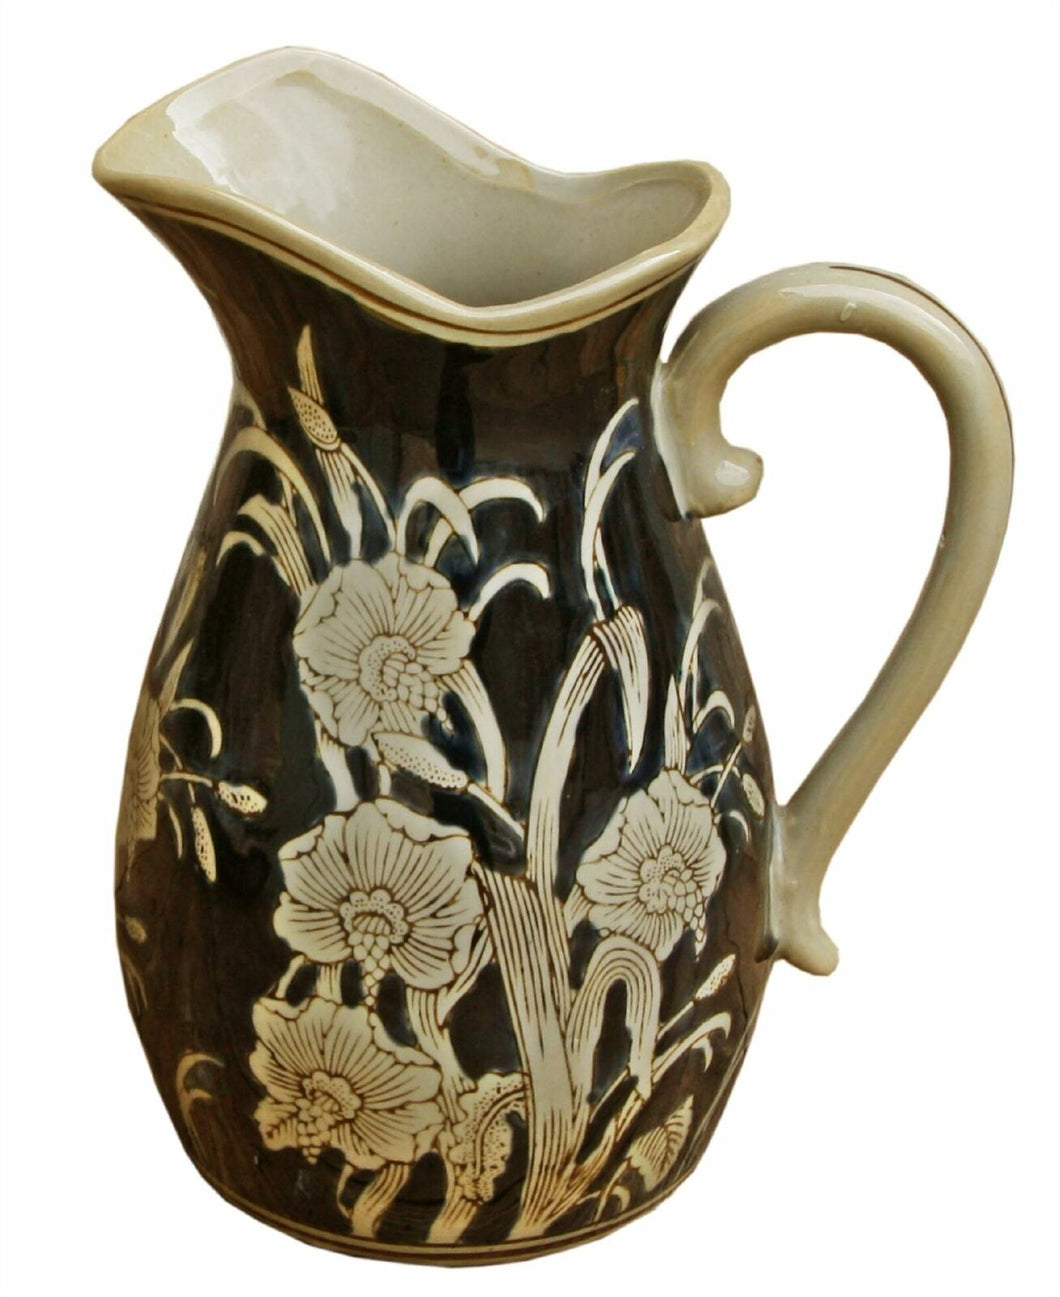 Ceramic embossed jug style vase regal design